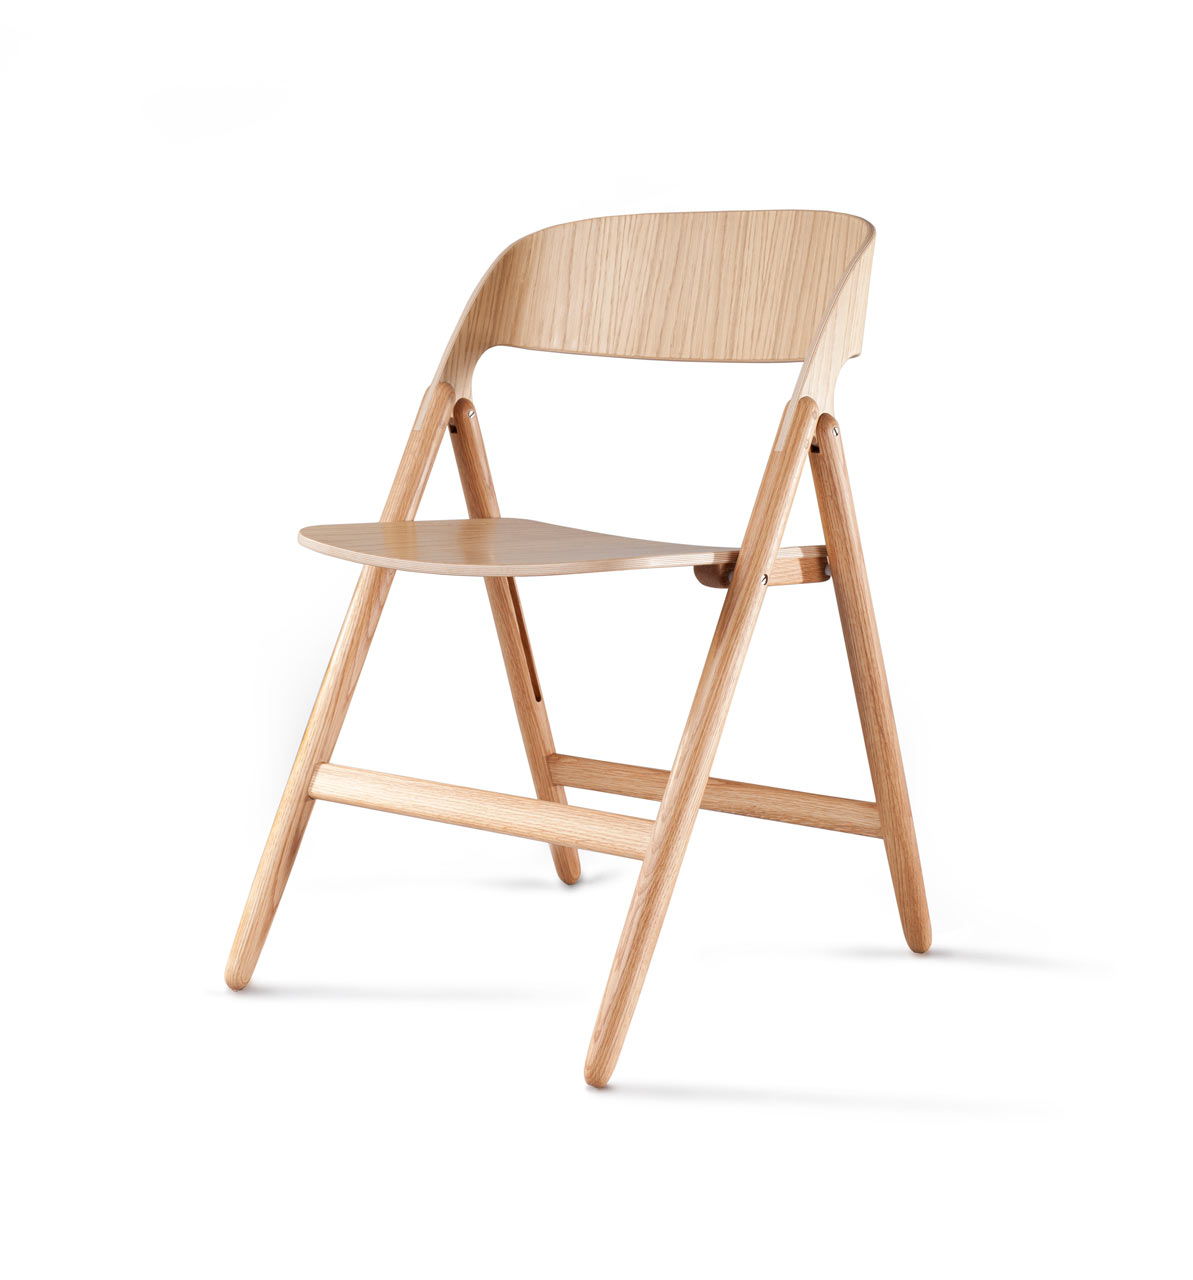 The Folding Chair Gets A Modern Update ...